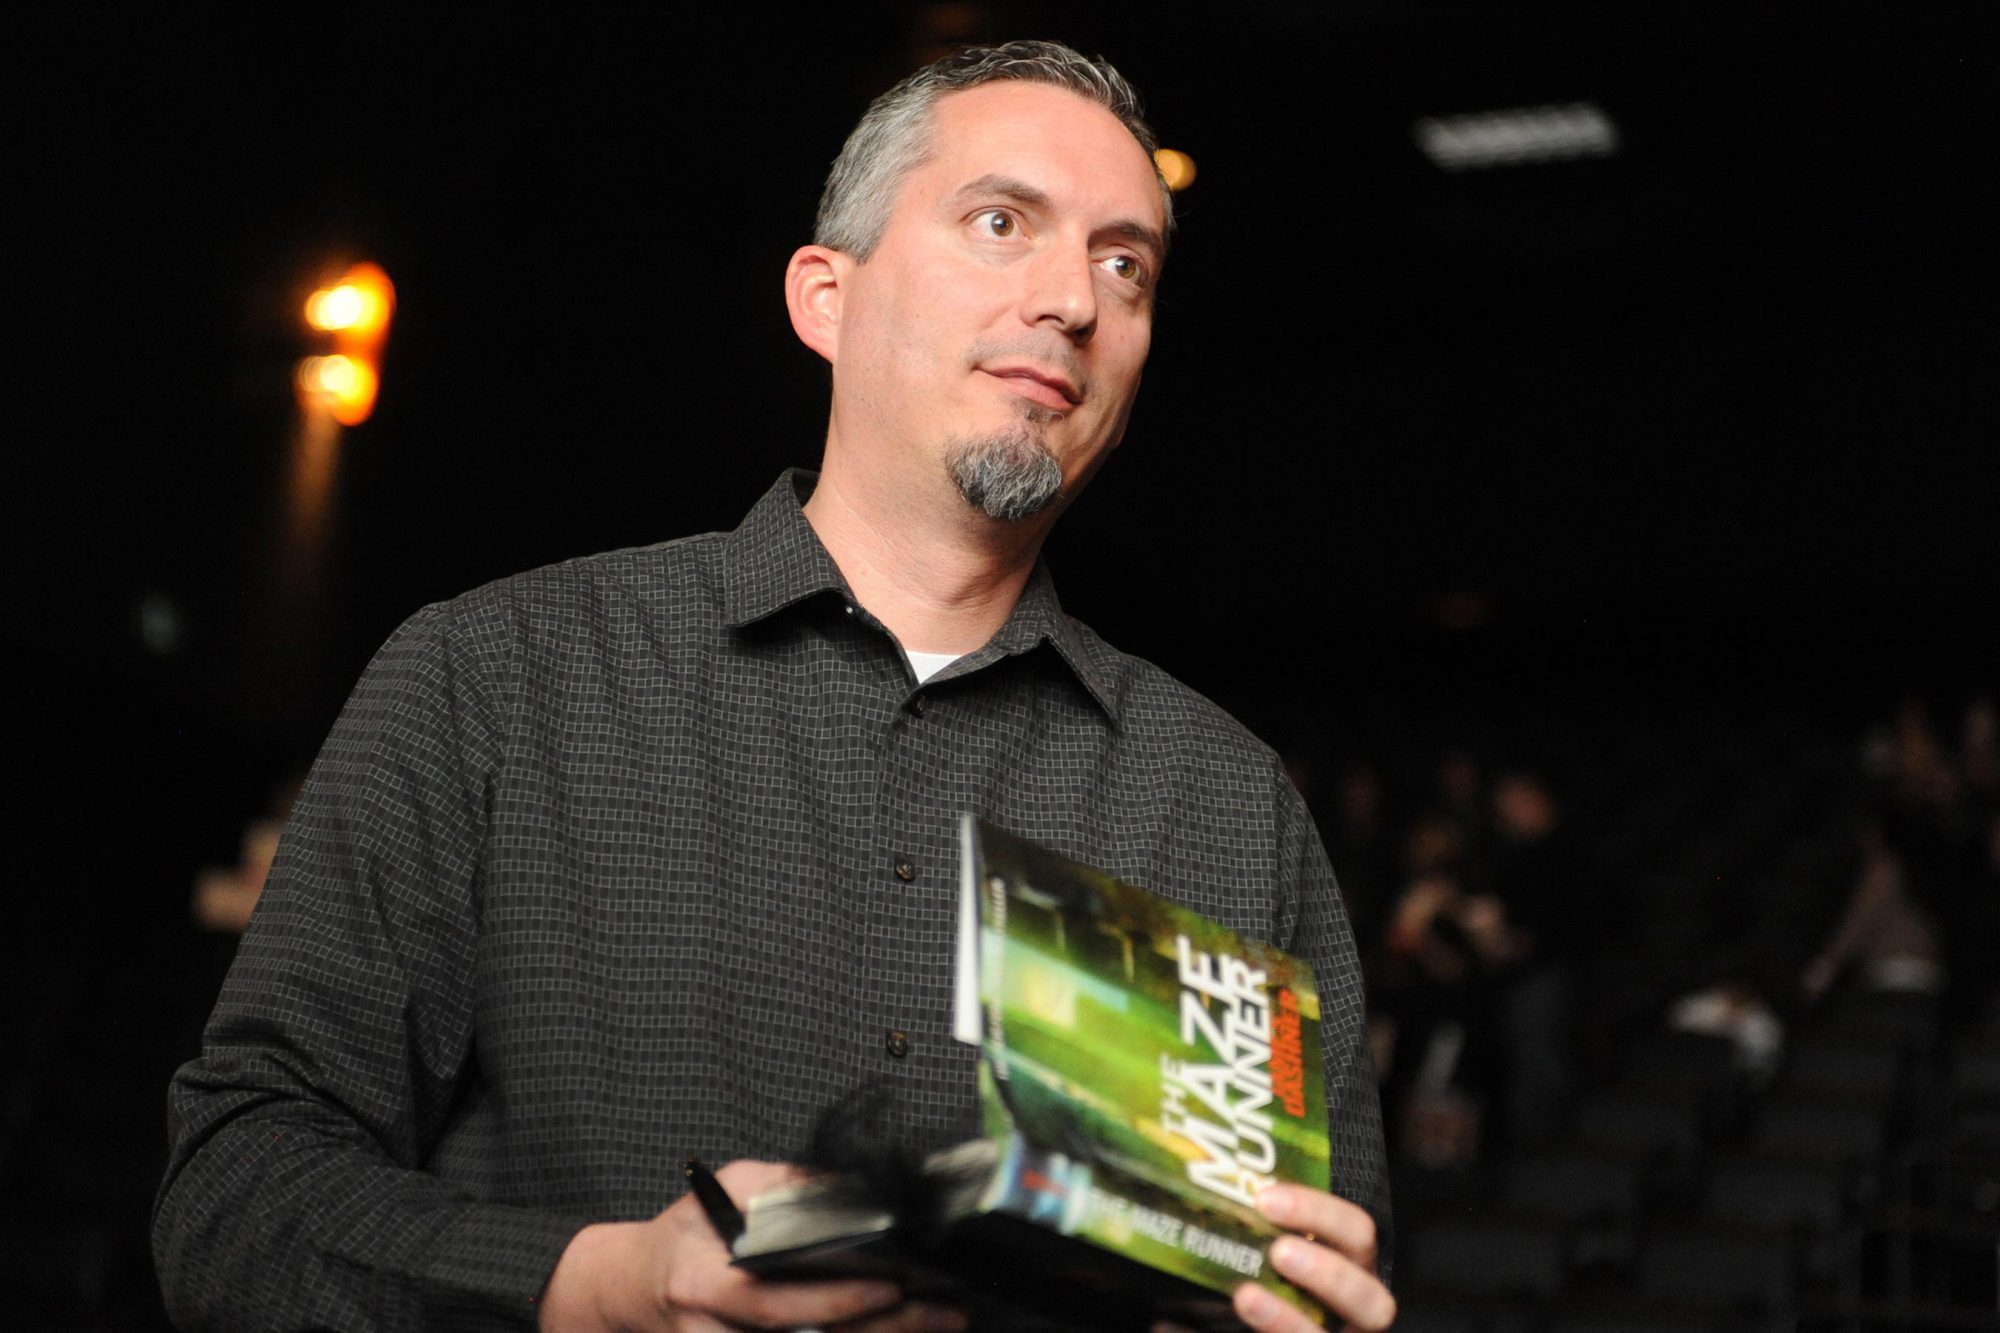 THE MAZE RUNNER Opening Night Q&A With Author James Dashner